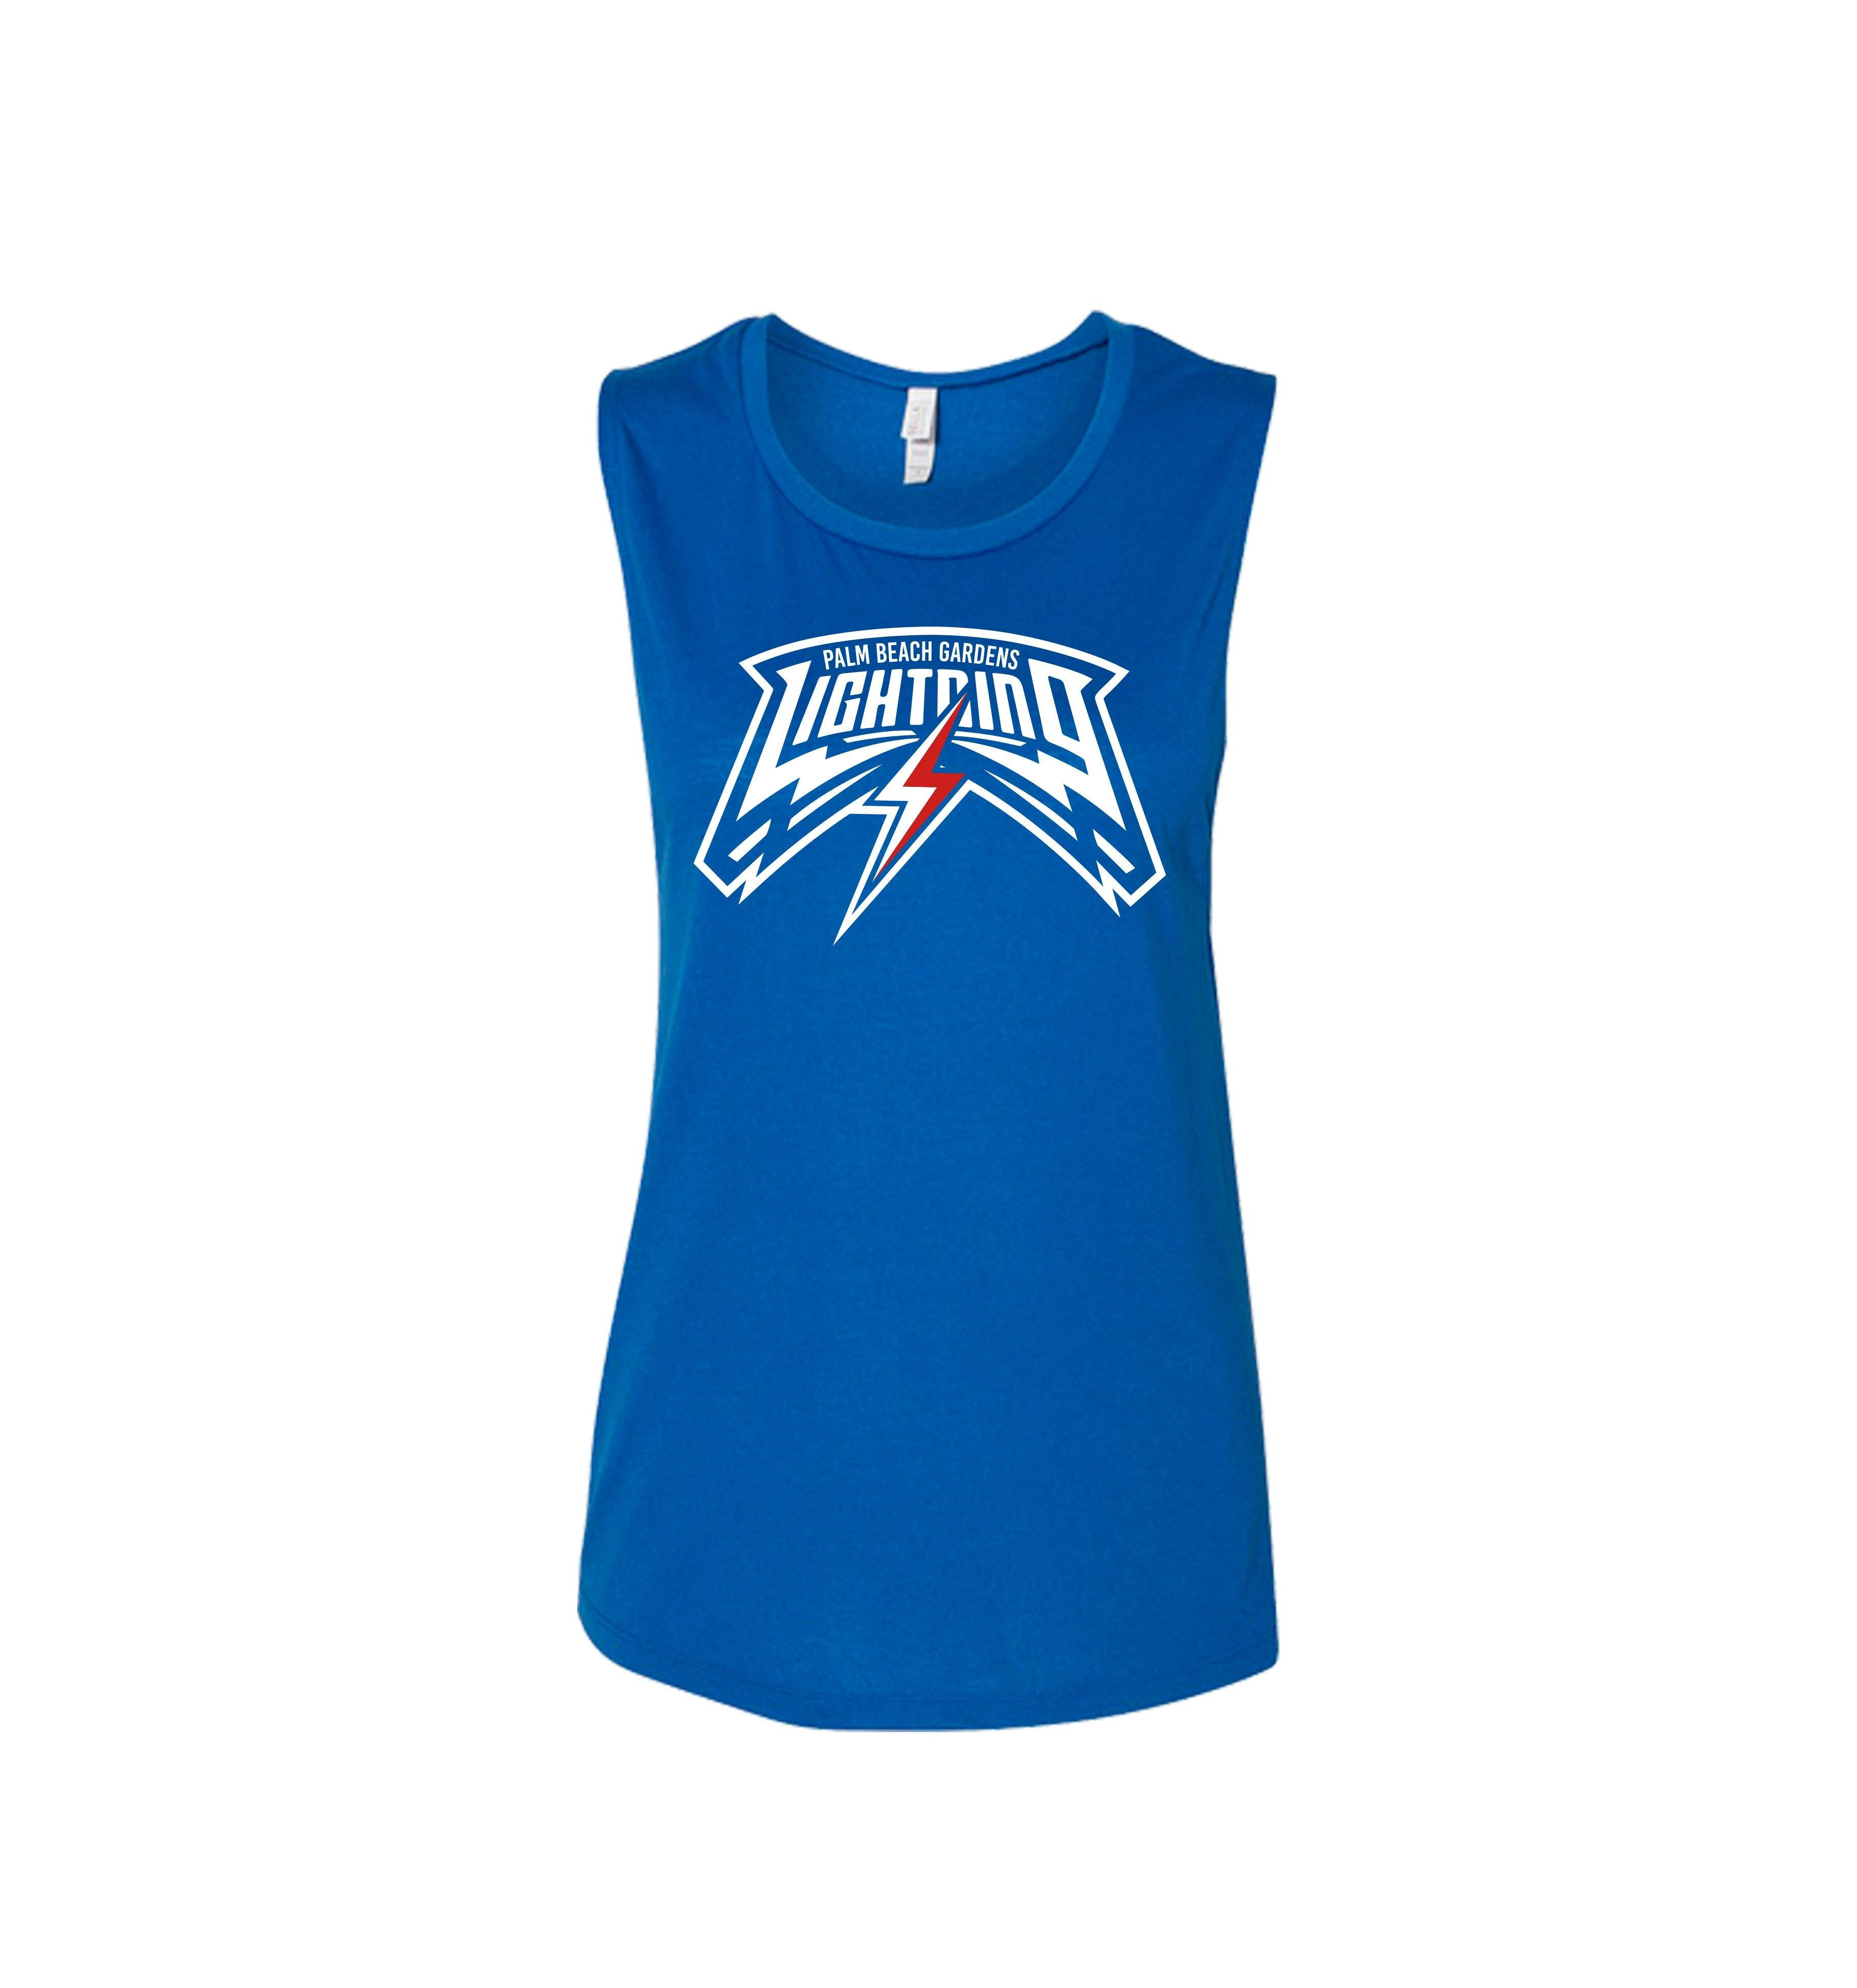 PBG RED BOLT Lightning Women's Muscle Tank - Shops by Green Gorilla